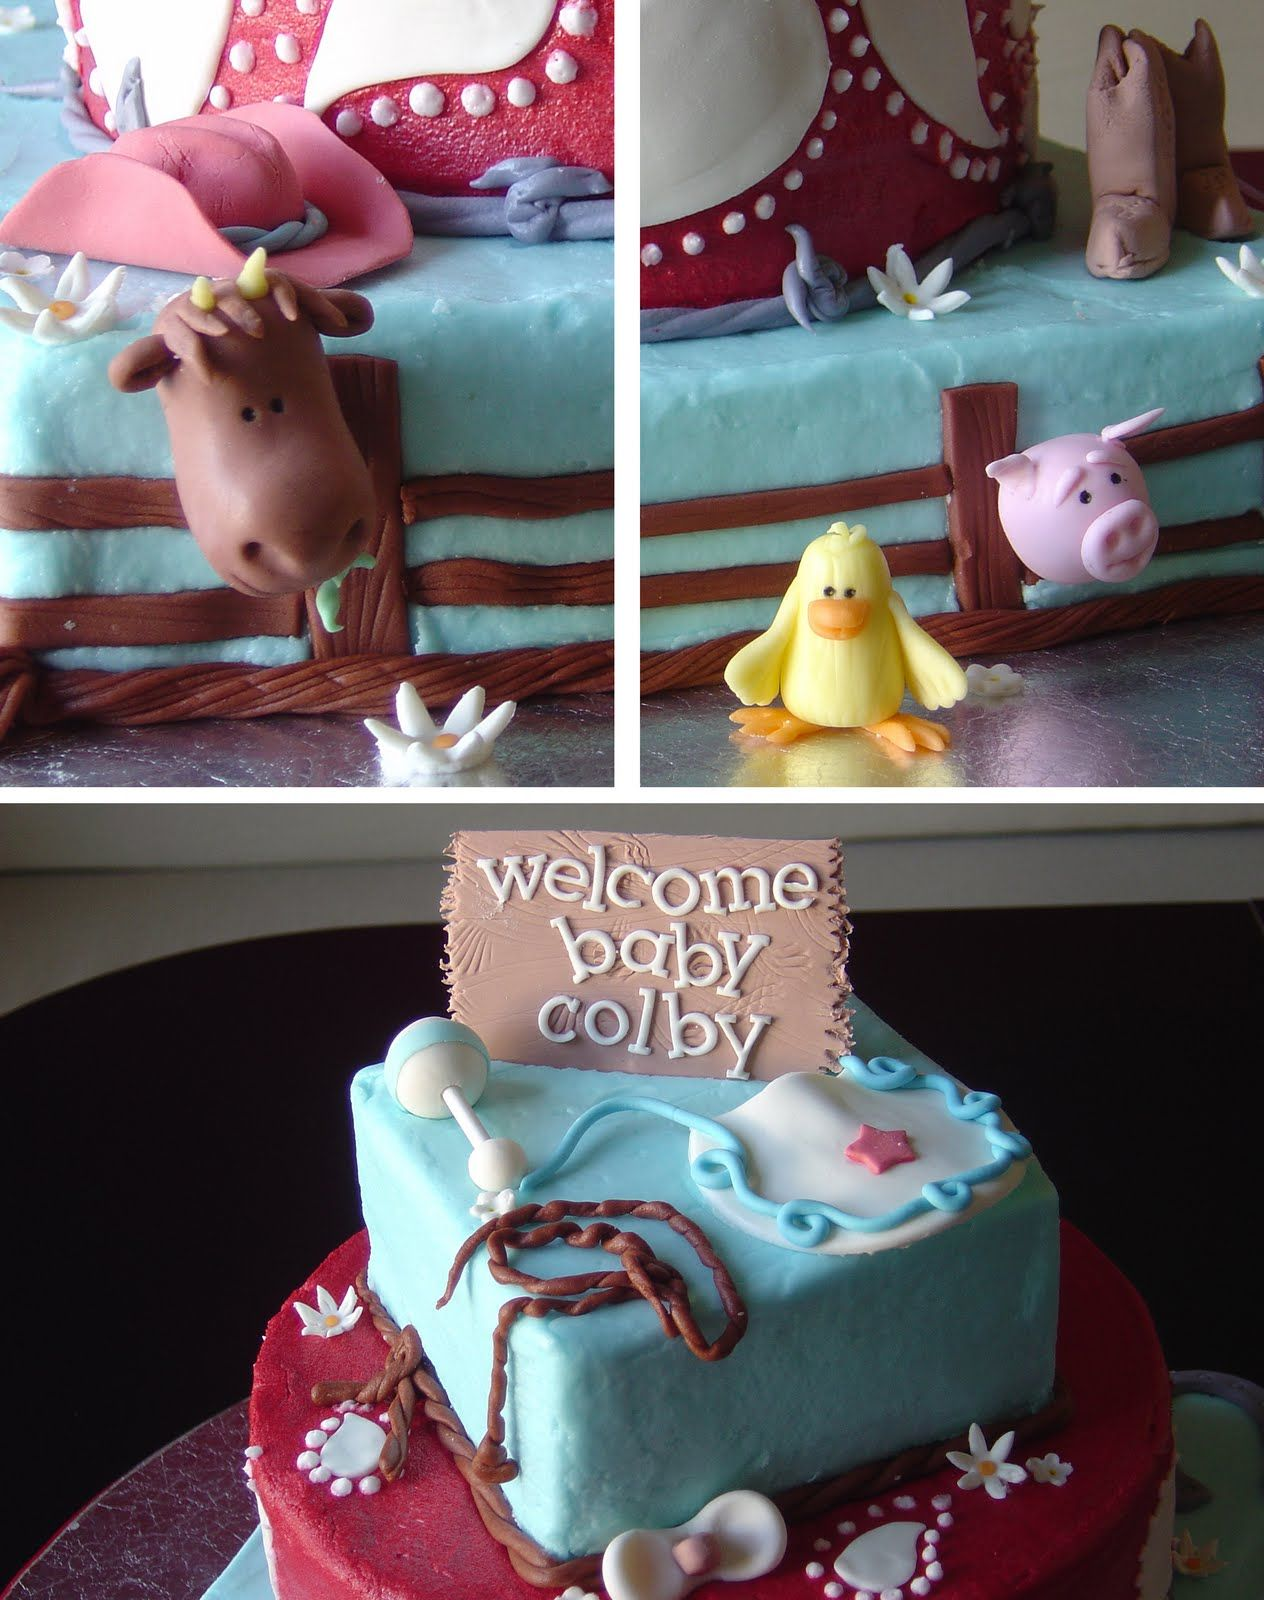 Western Baby Shower Cake Ideas | Crazy For Design: Western Baby Shower  Cake. SO